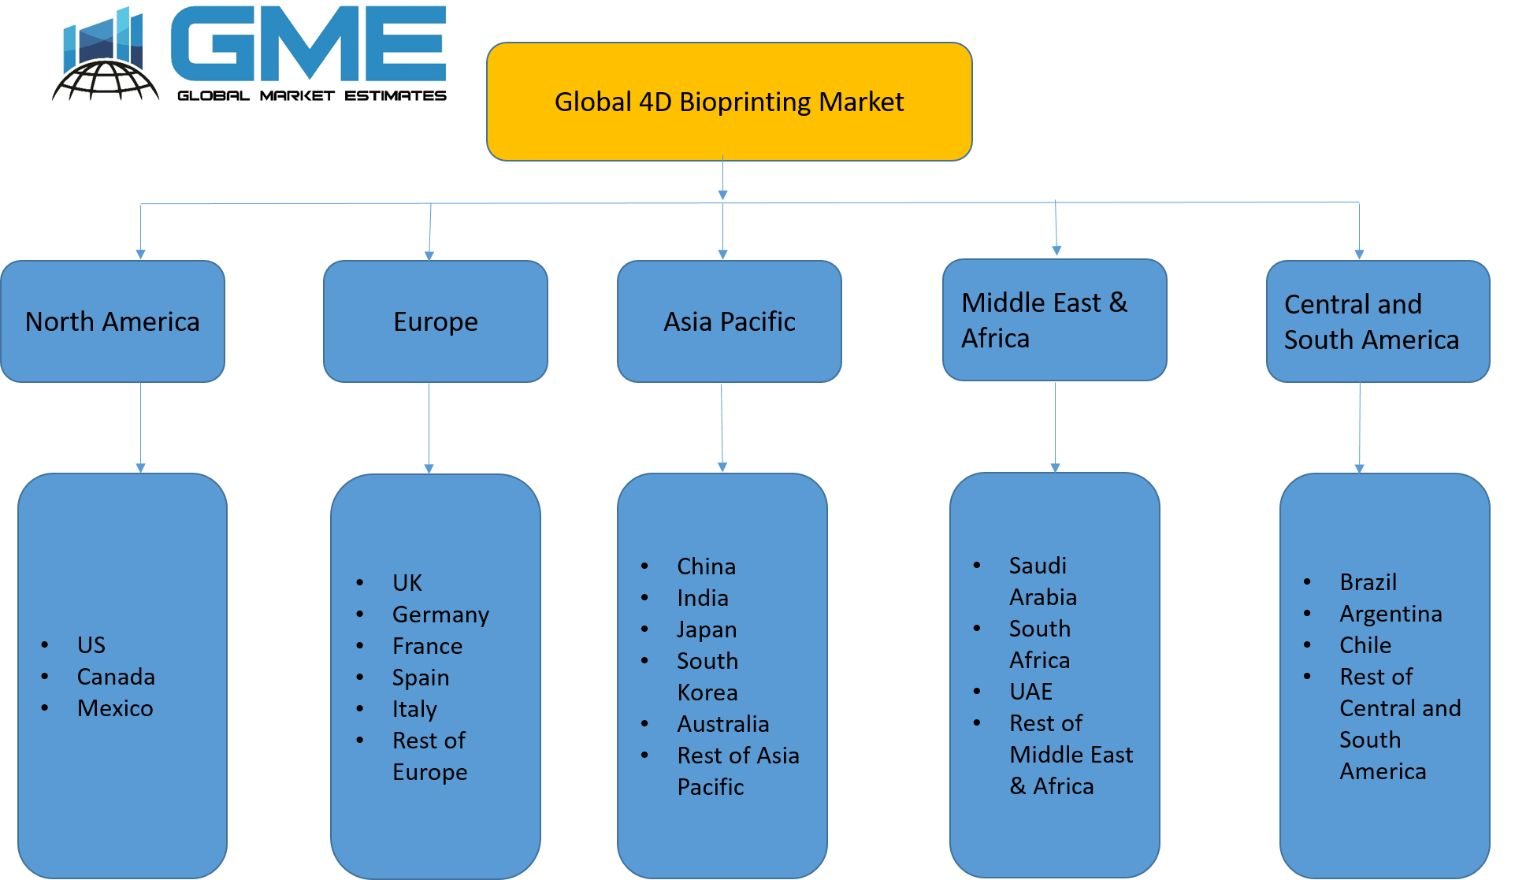 Global 4D Bioprinting Market - Regional Analysis